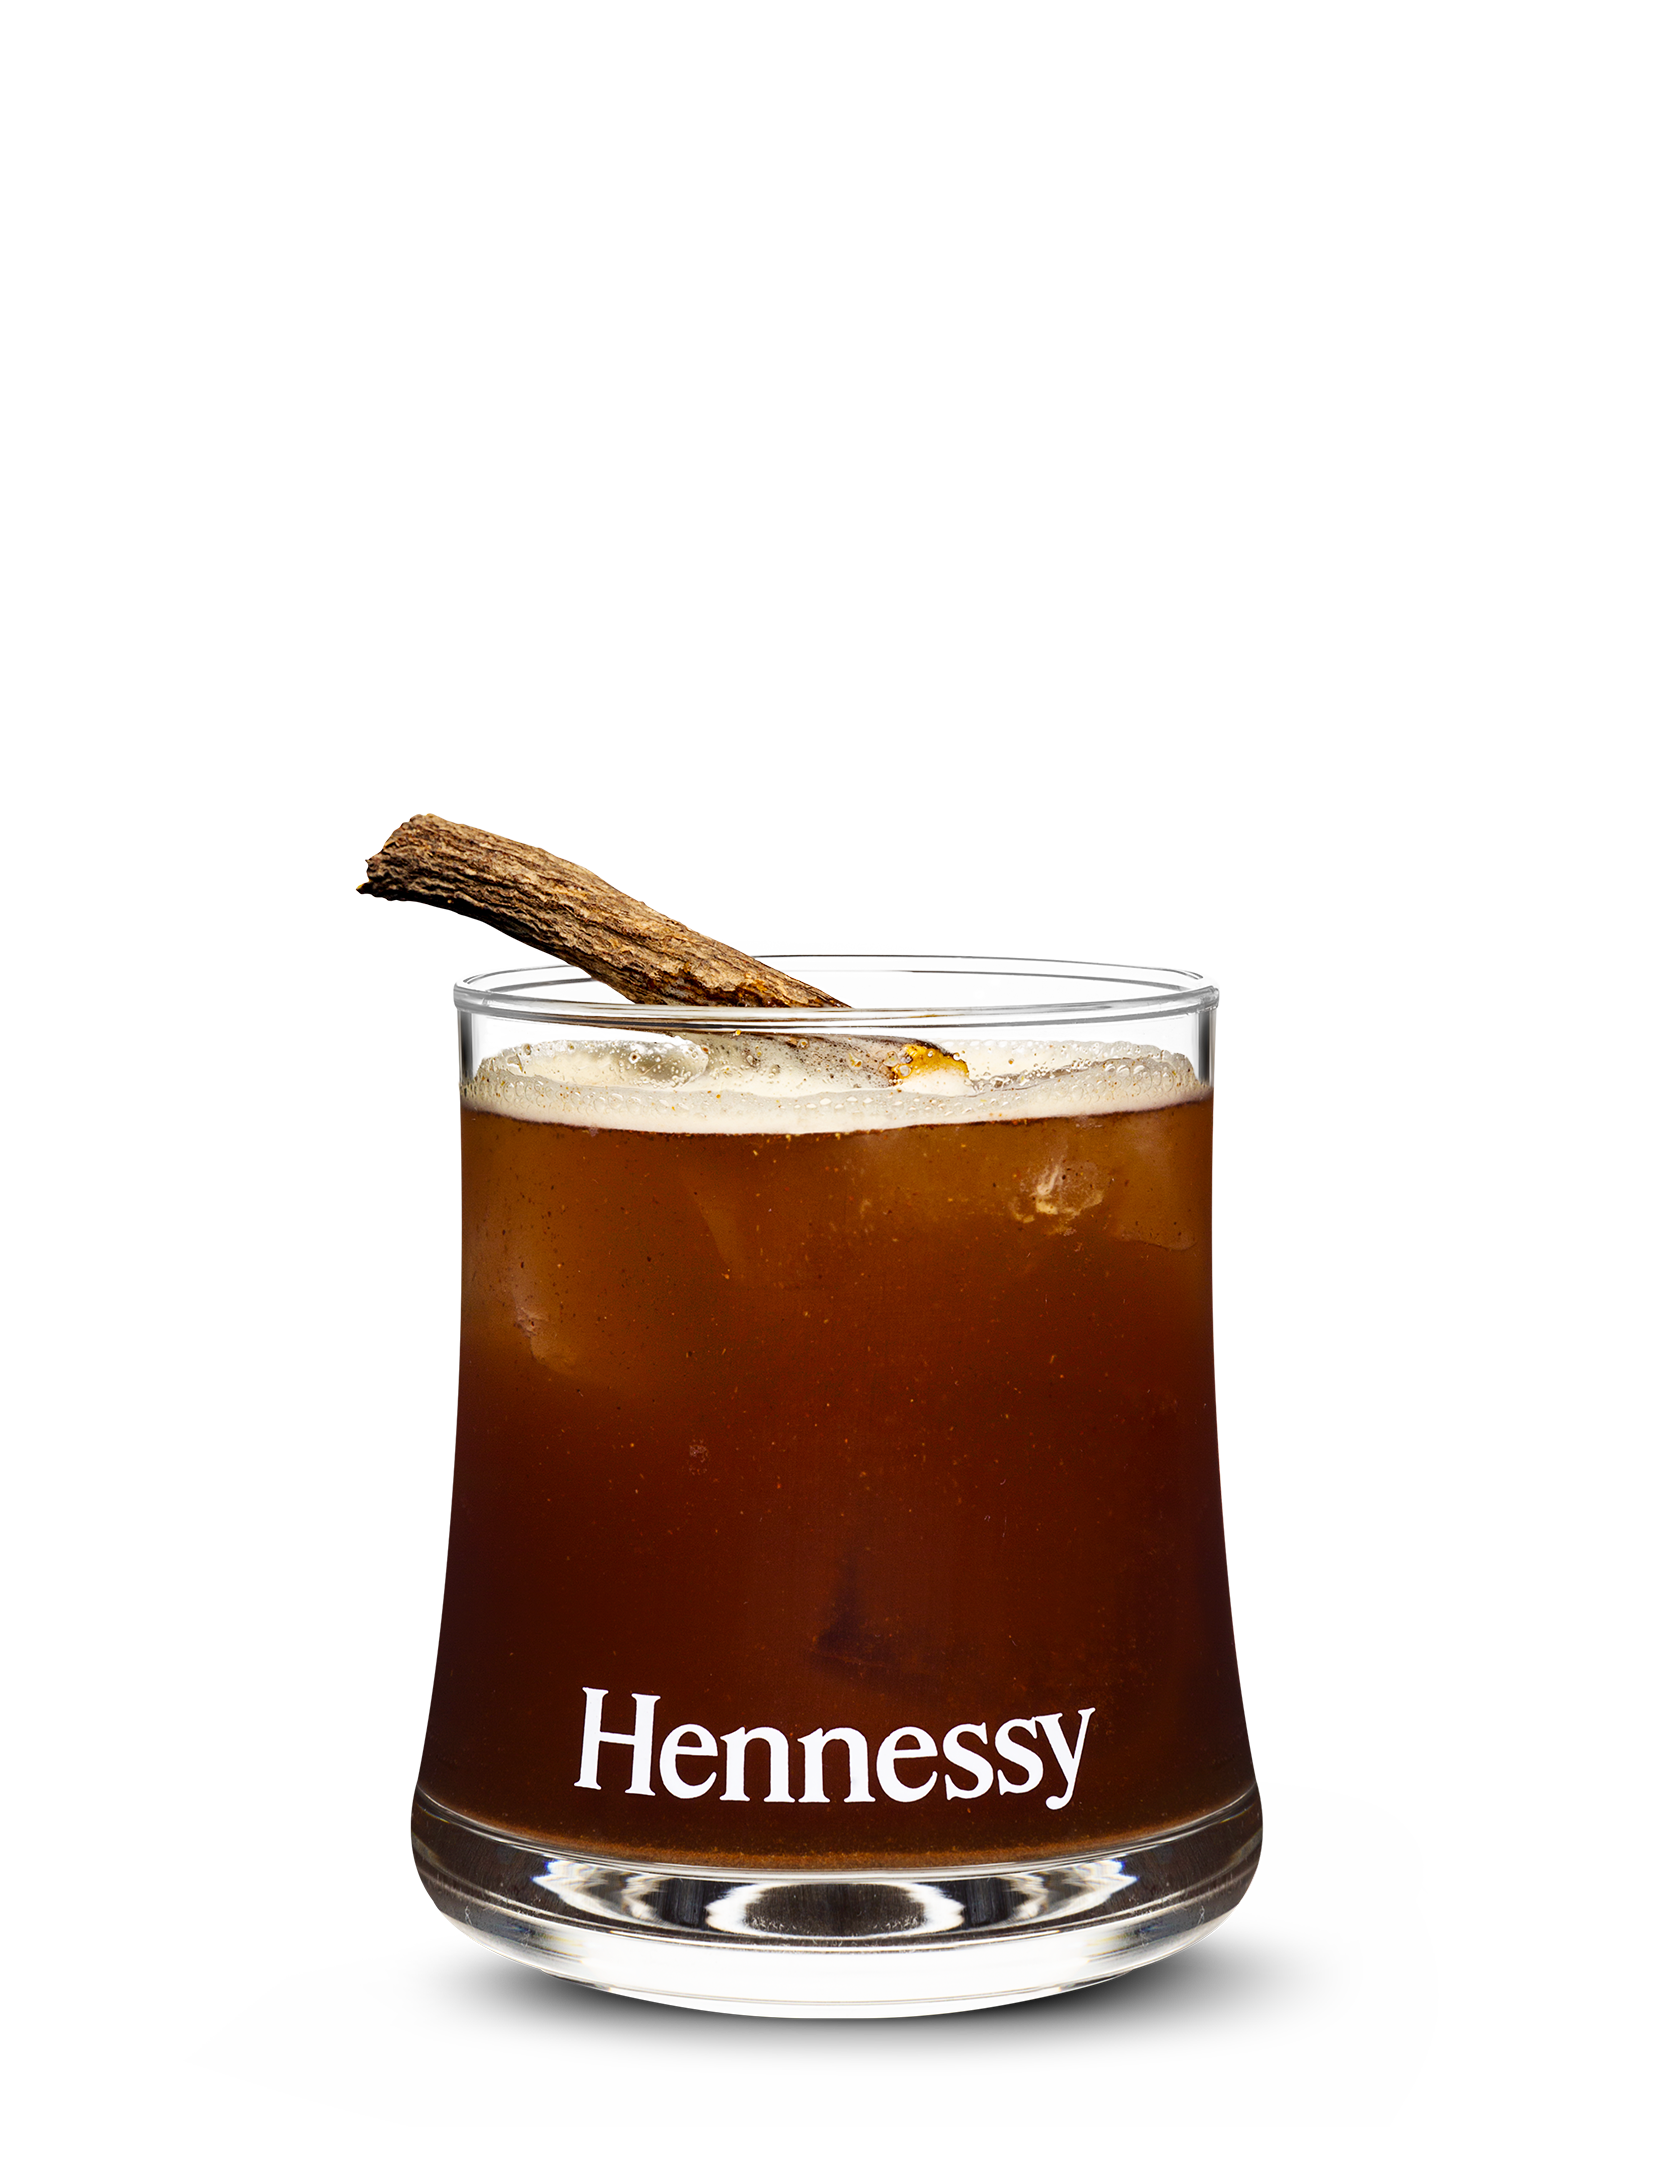 195-THE-HENNESSY-SPICY-BLAZER-SIMPL-RVB.png